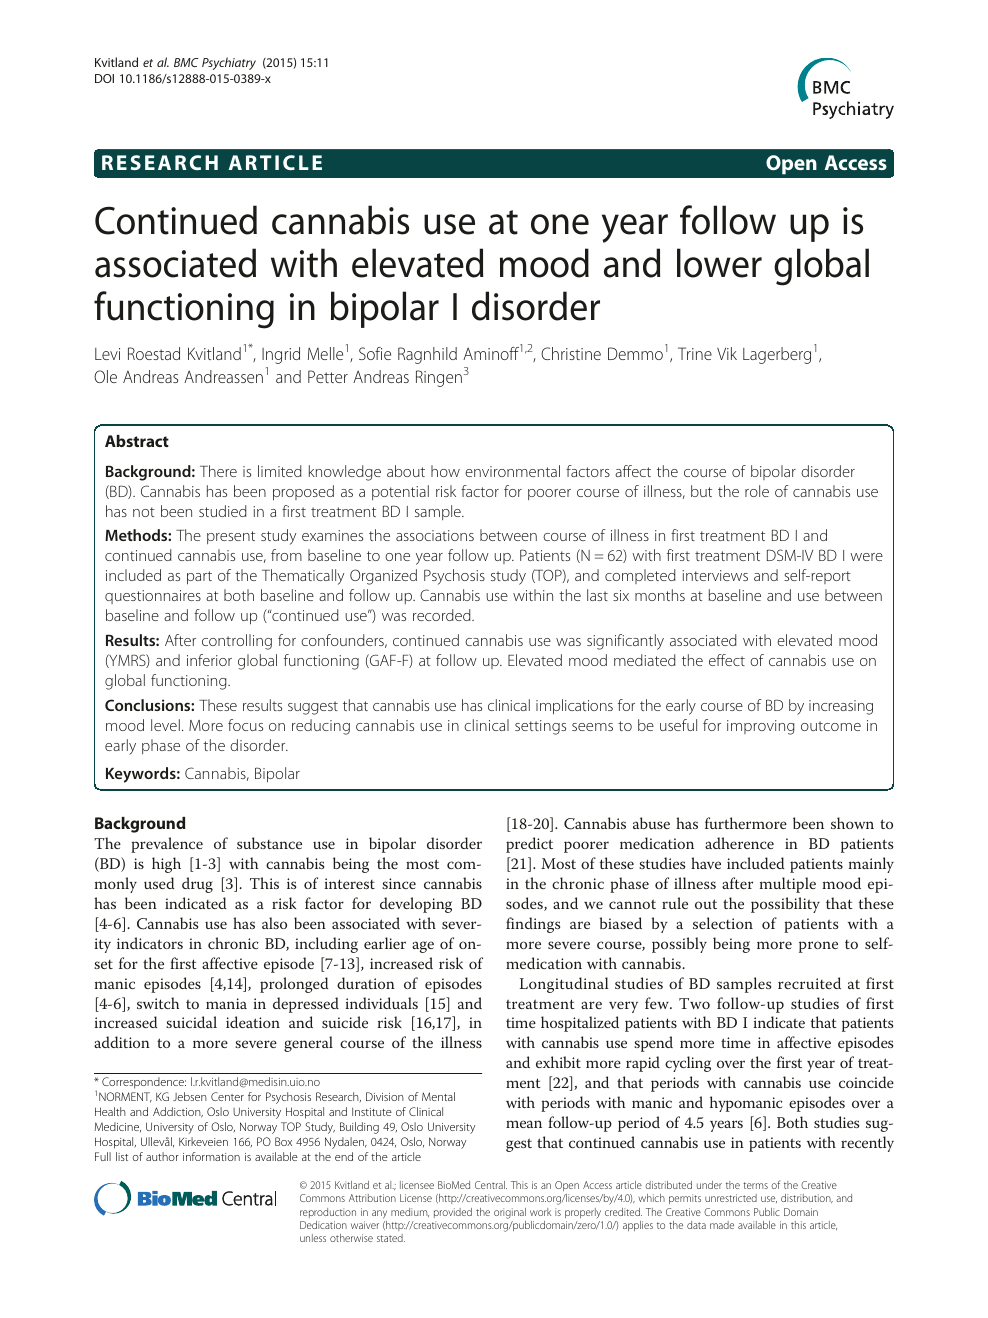 Continued cannabis use at one year follow up is associated with